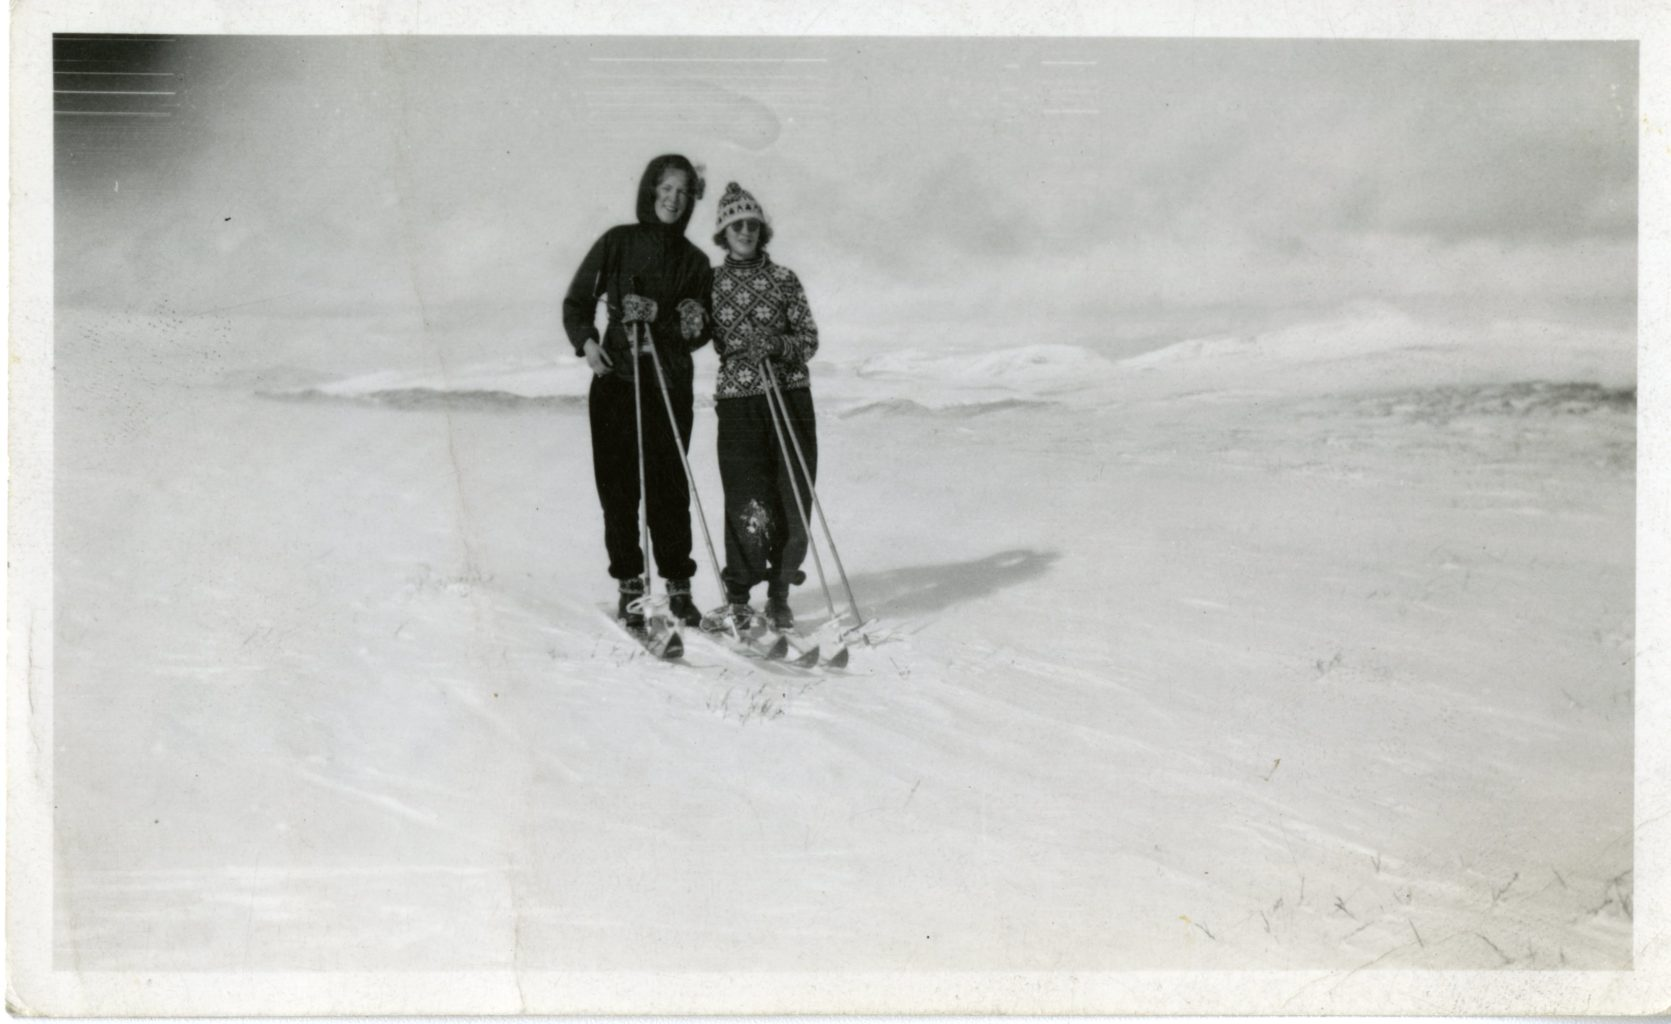 Two women pose while skiing.